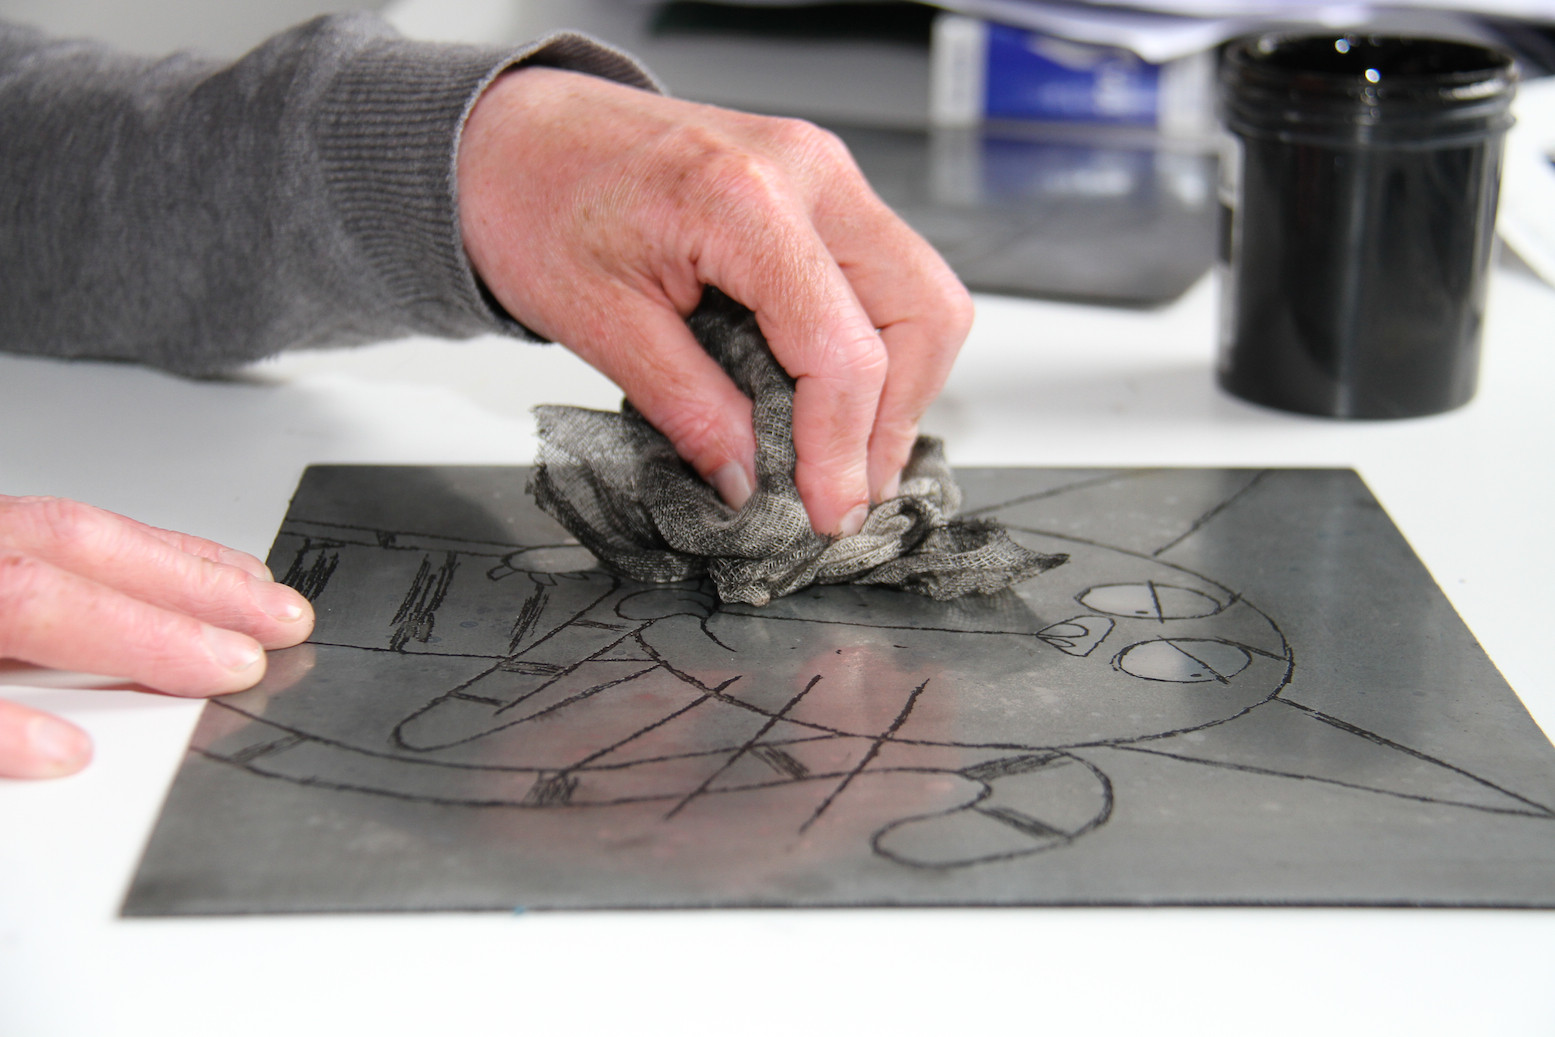 Another example of acid plate etching at a printmaking workshop